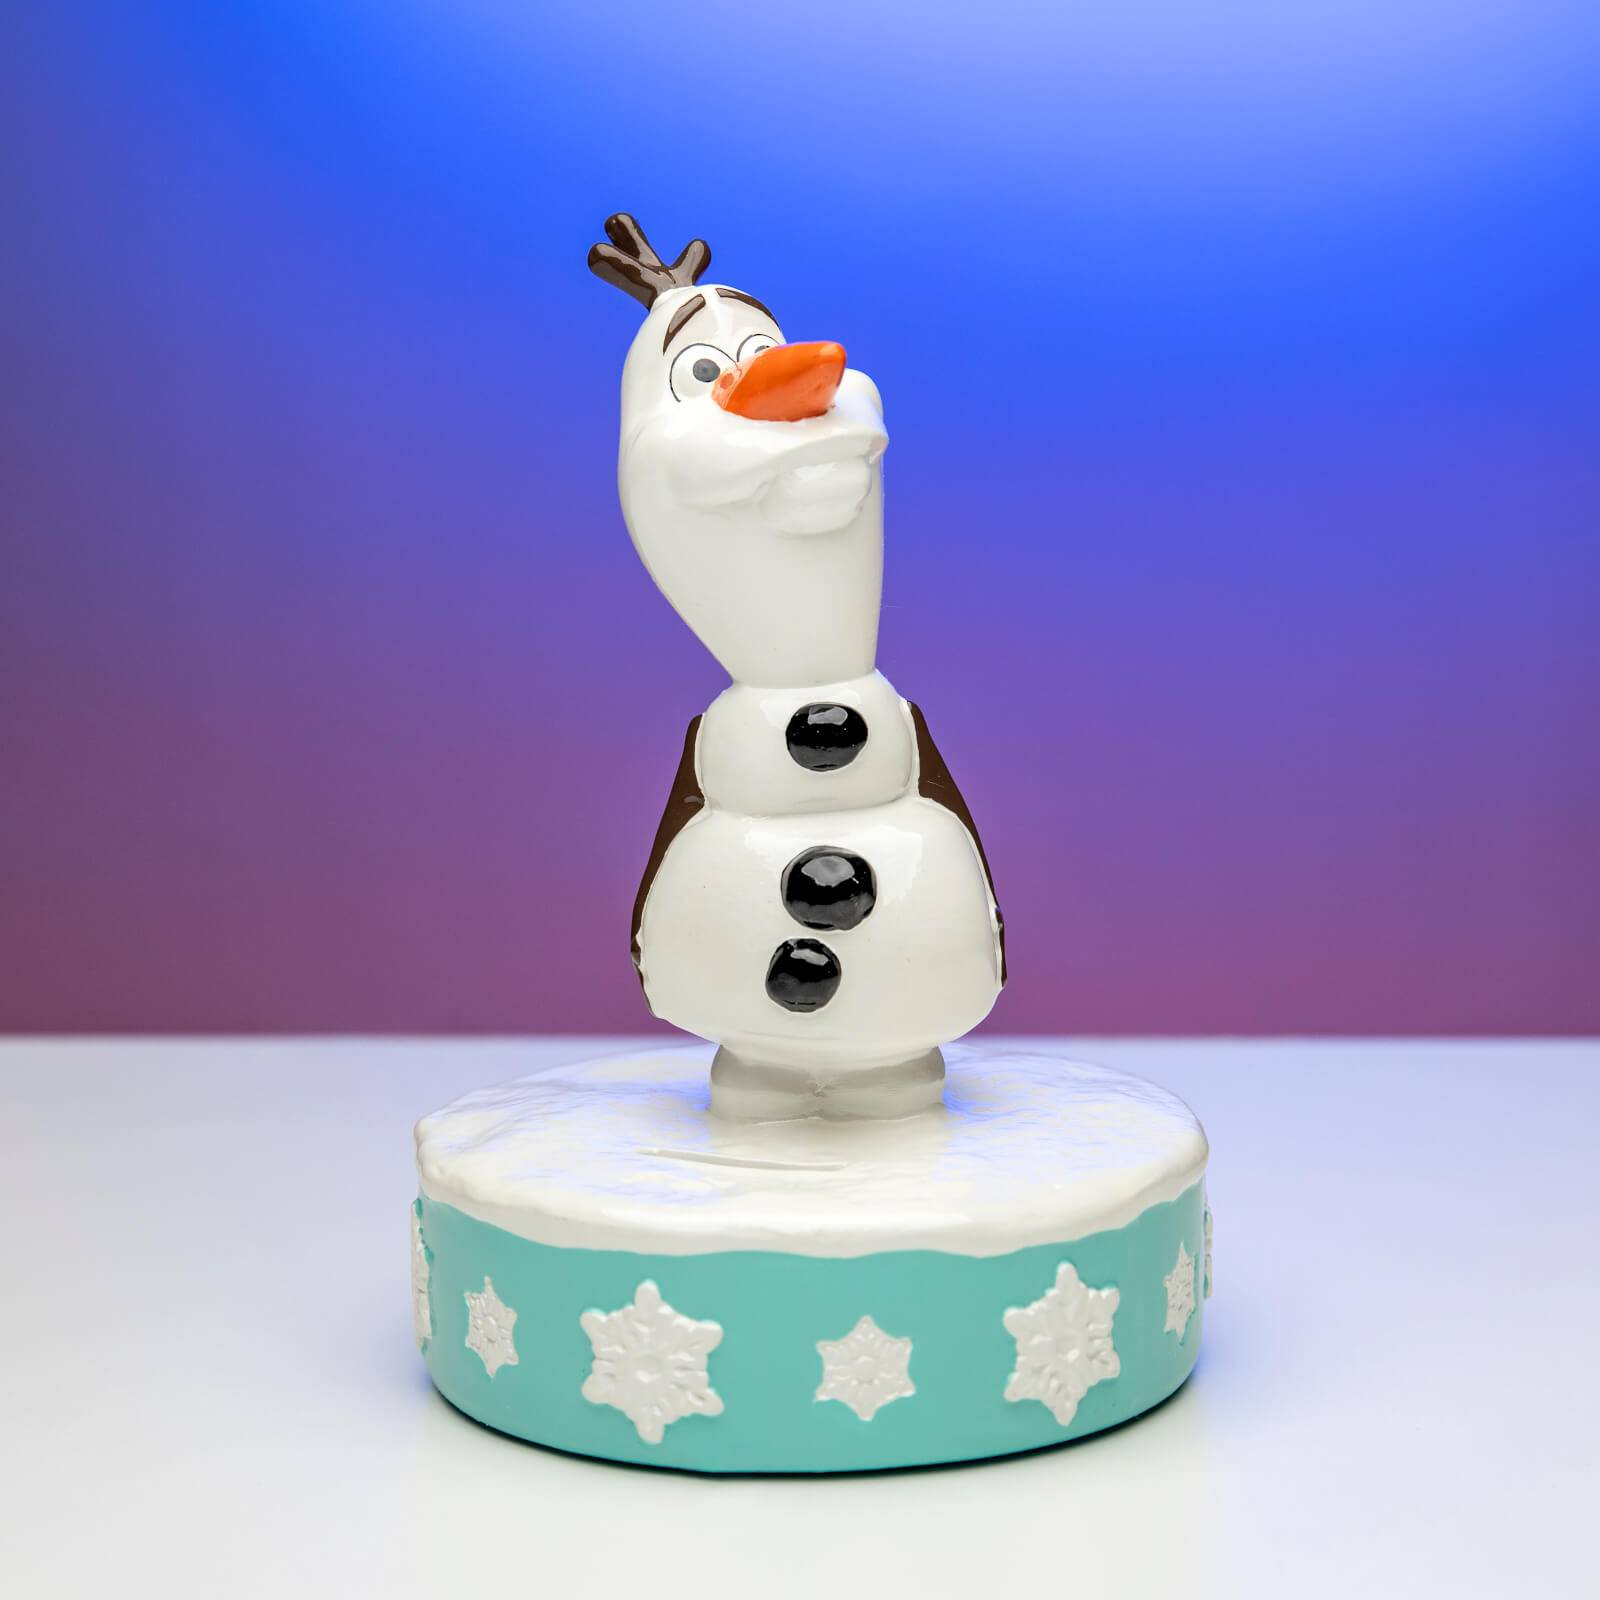 Paladone Frozen Olaf Money Box-unisex